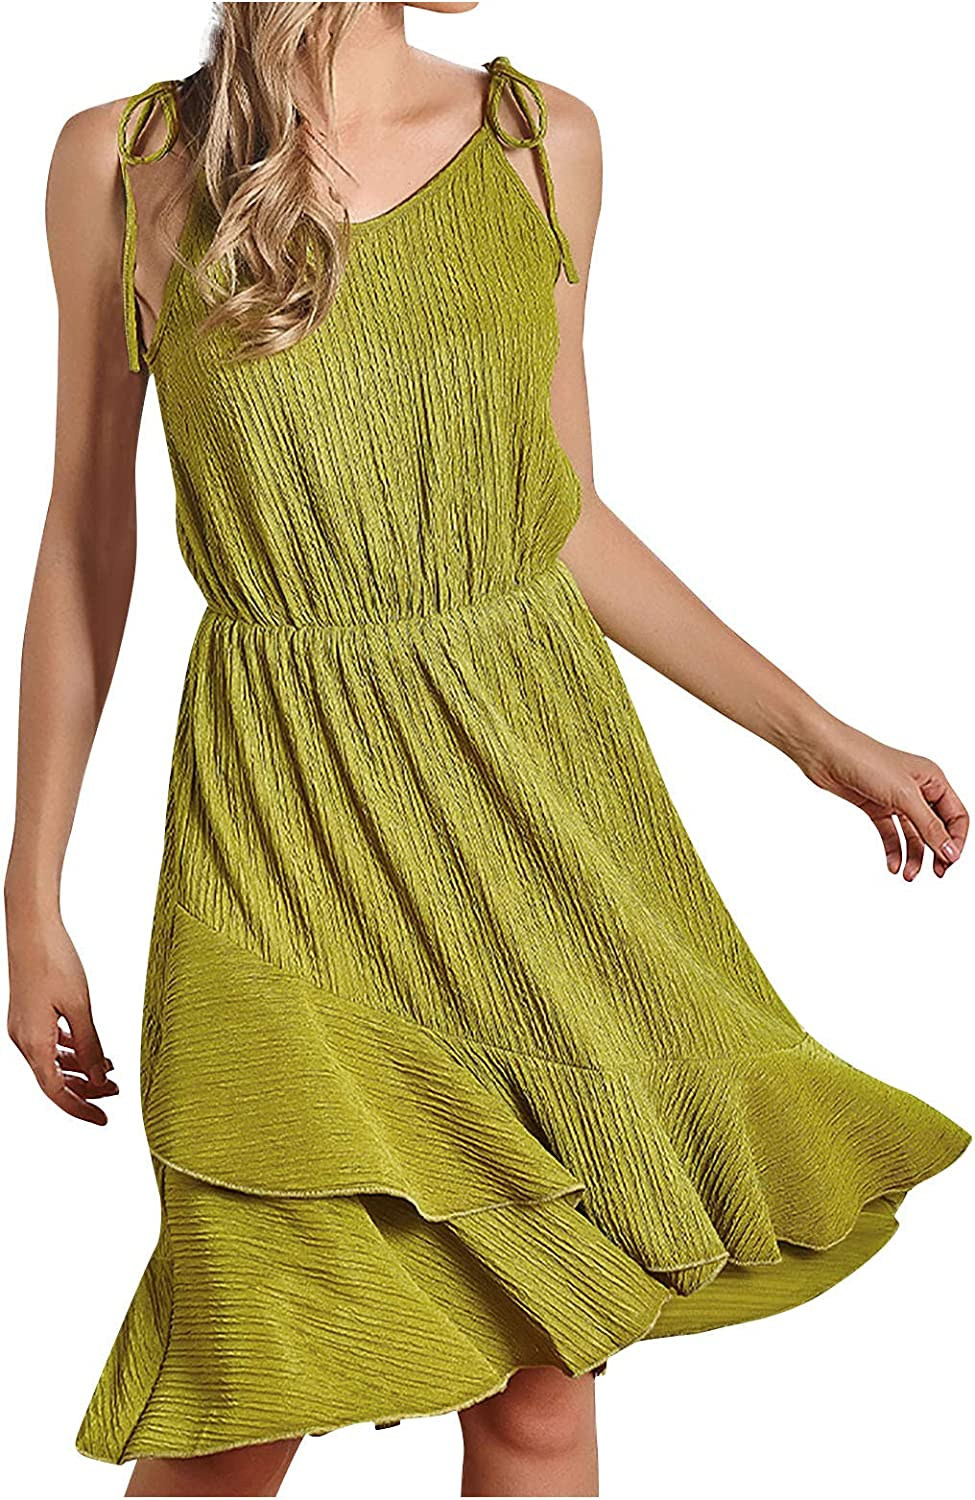 Women Spaghetti Strap Solid Los Angeles Mall Color Dress NEW before selling ☆ Sleeveless Lace-u Summer